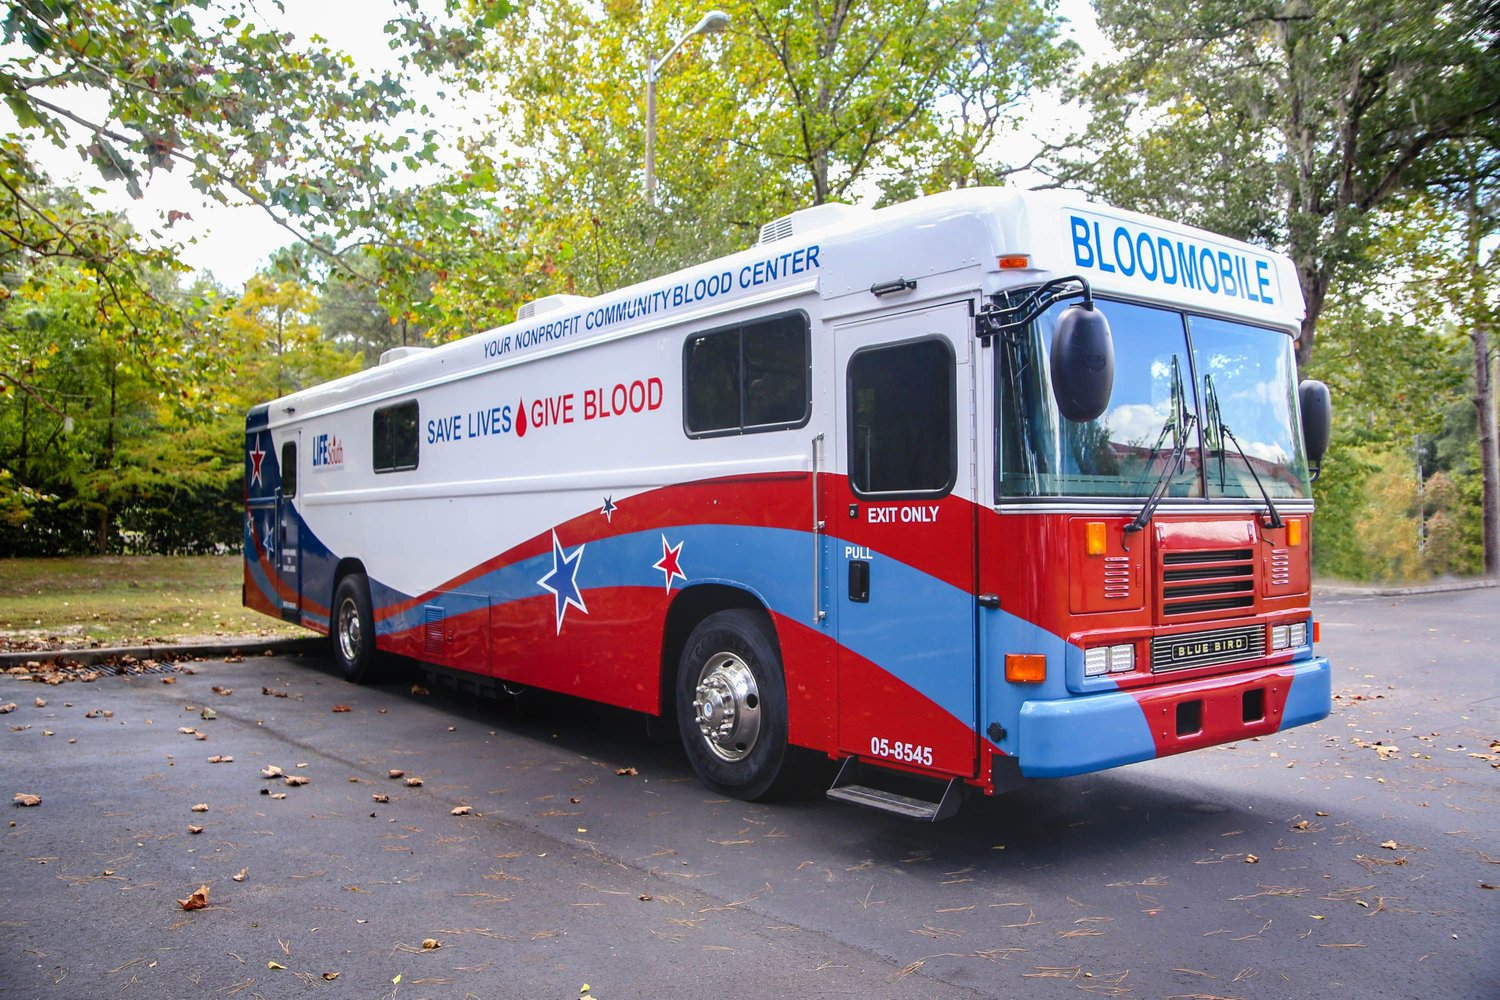 LifeSouth has a donation center in Jacksonville but travels around the city with their mobile blood bus to collect from donors across the area.